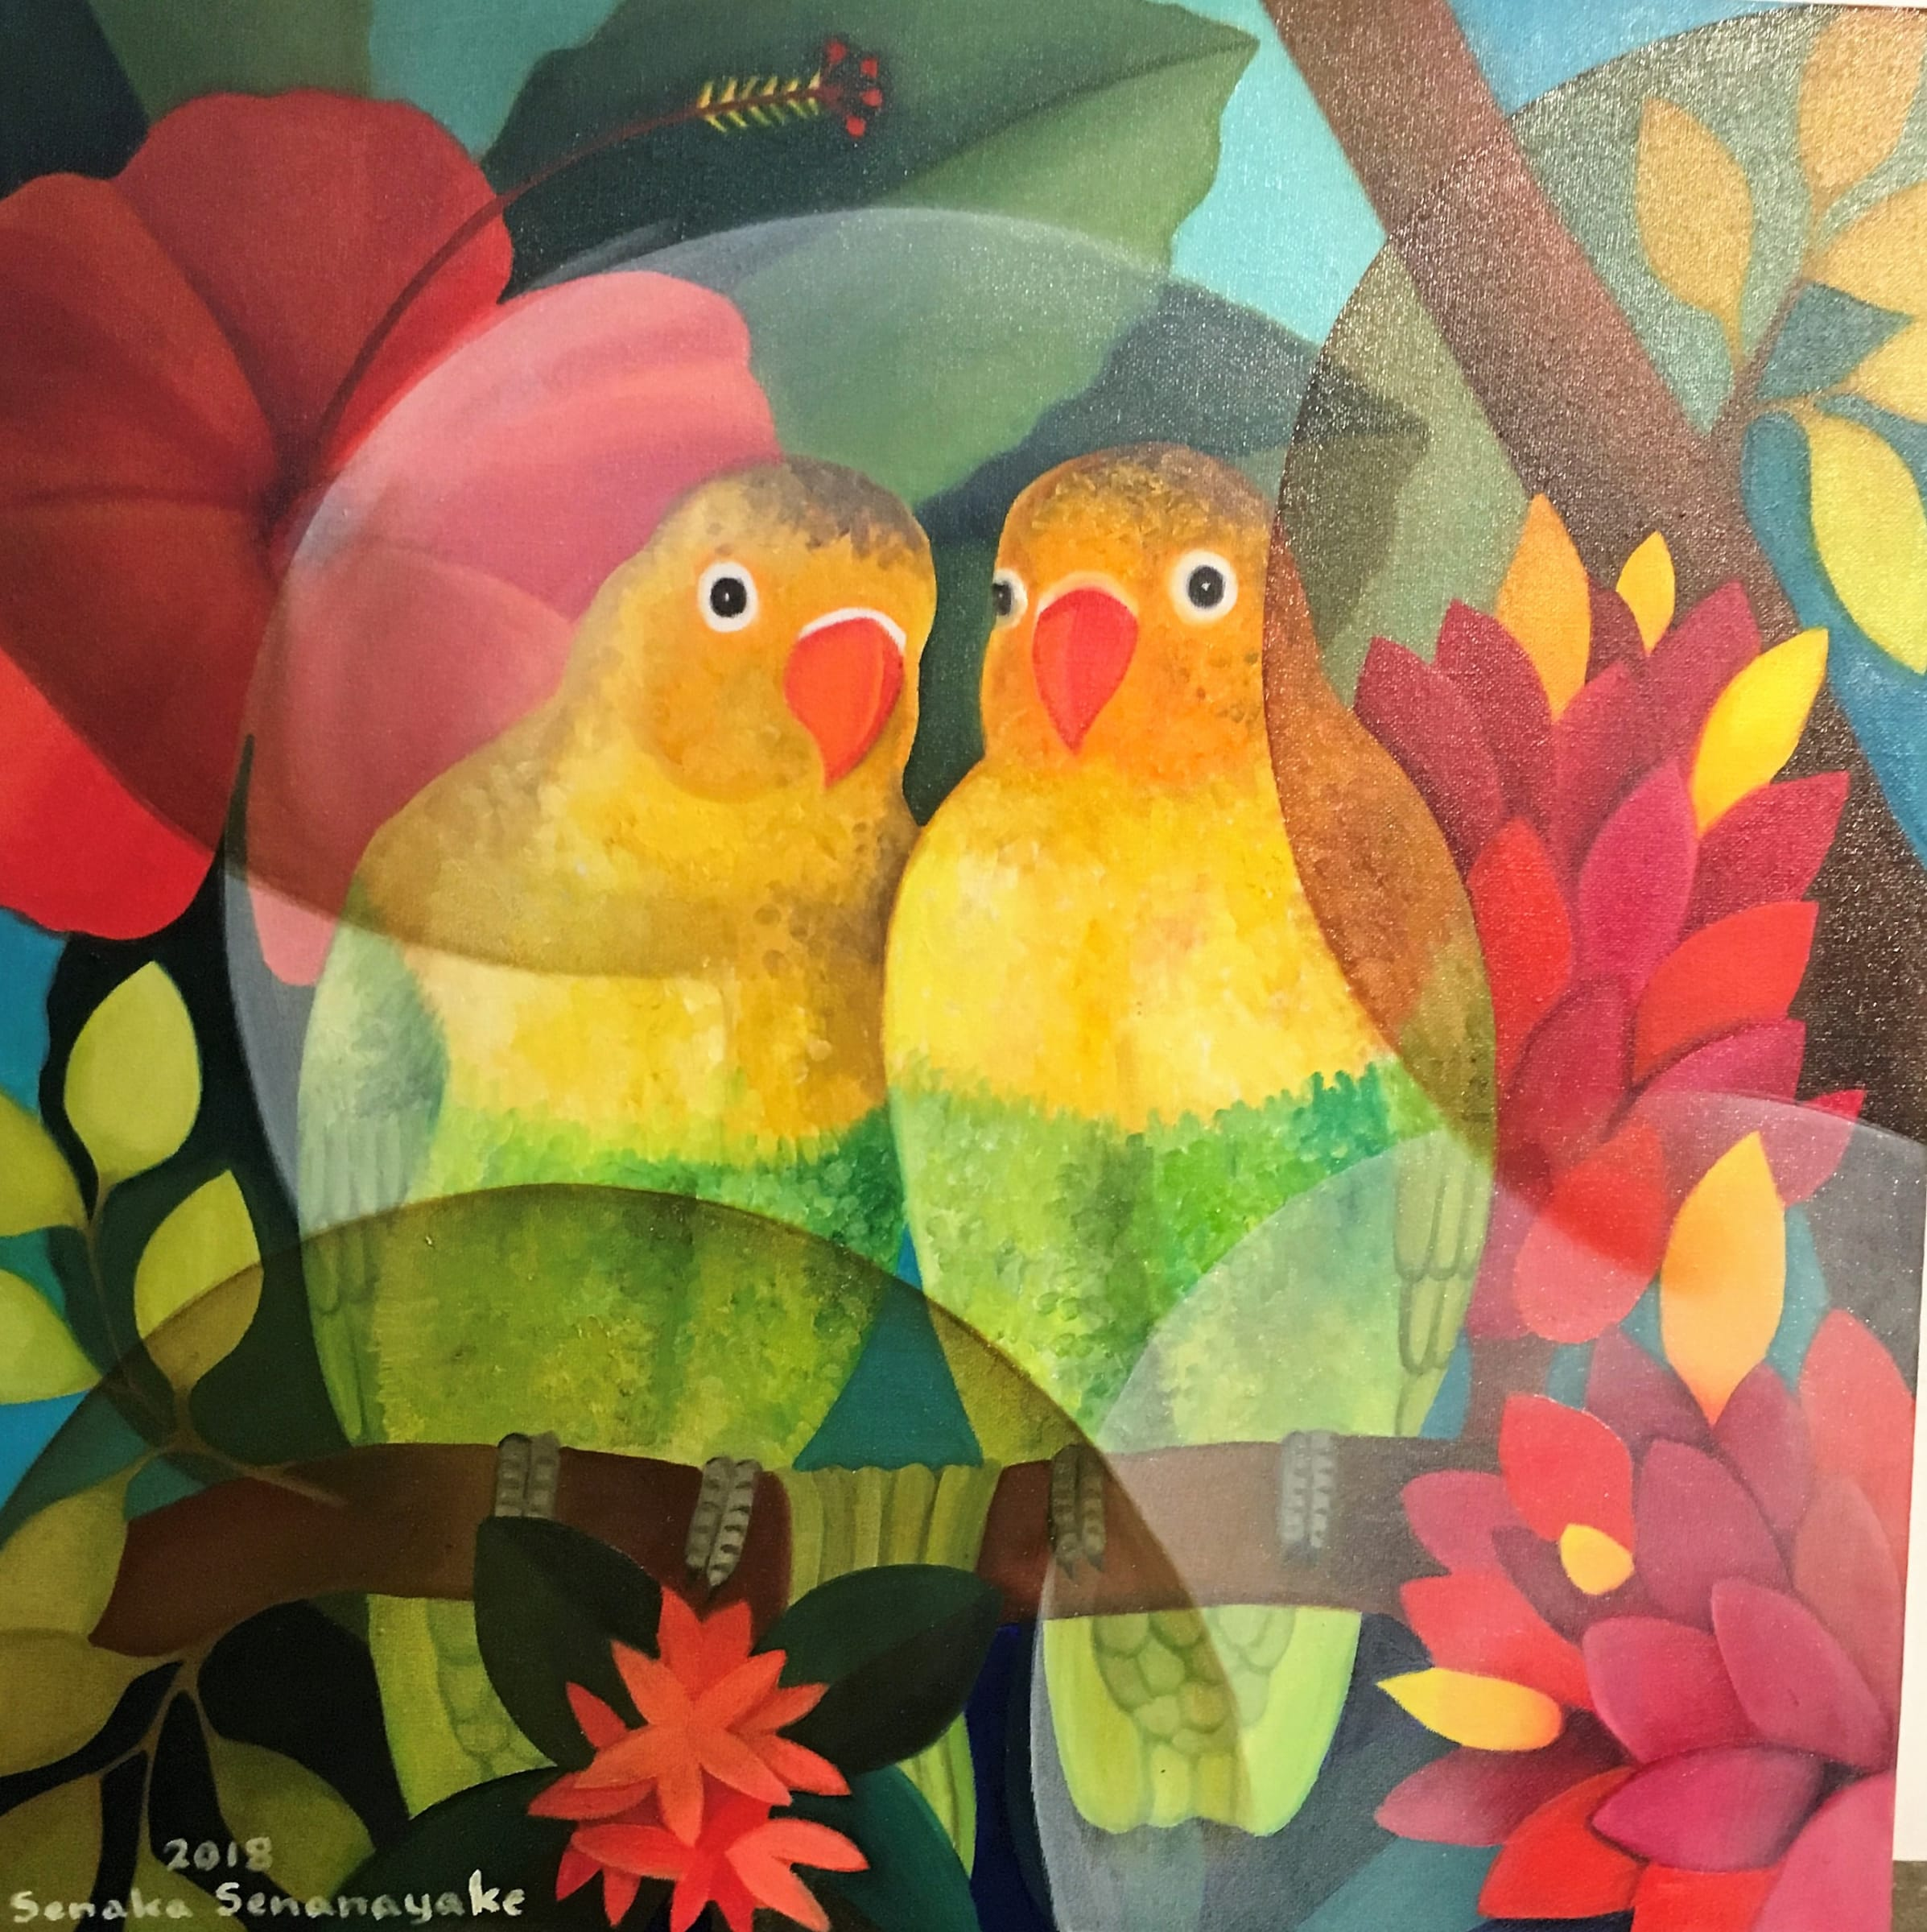 Senaka Senanayake Lovebirds 2018 Grosvenor Gallery